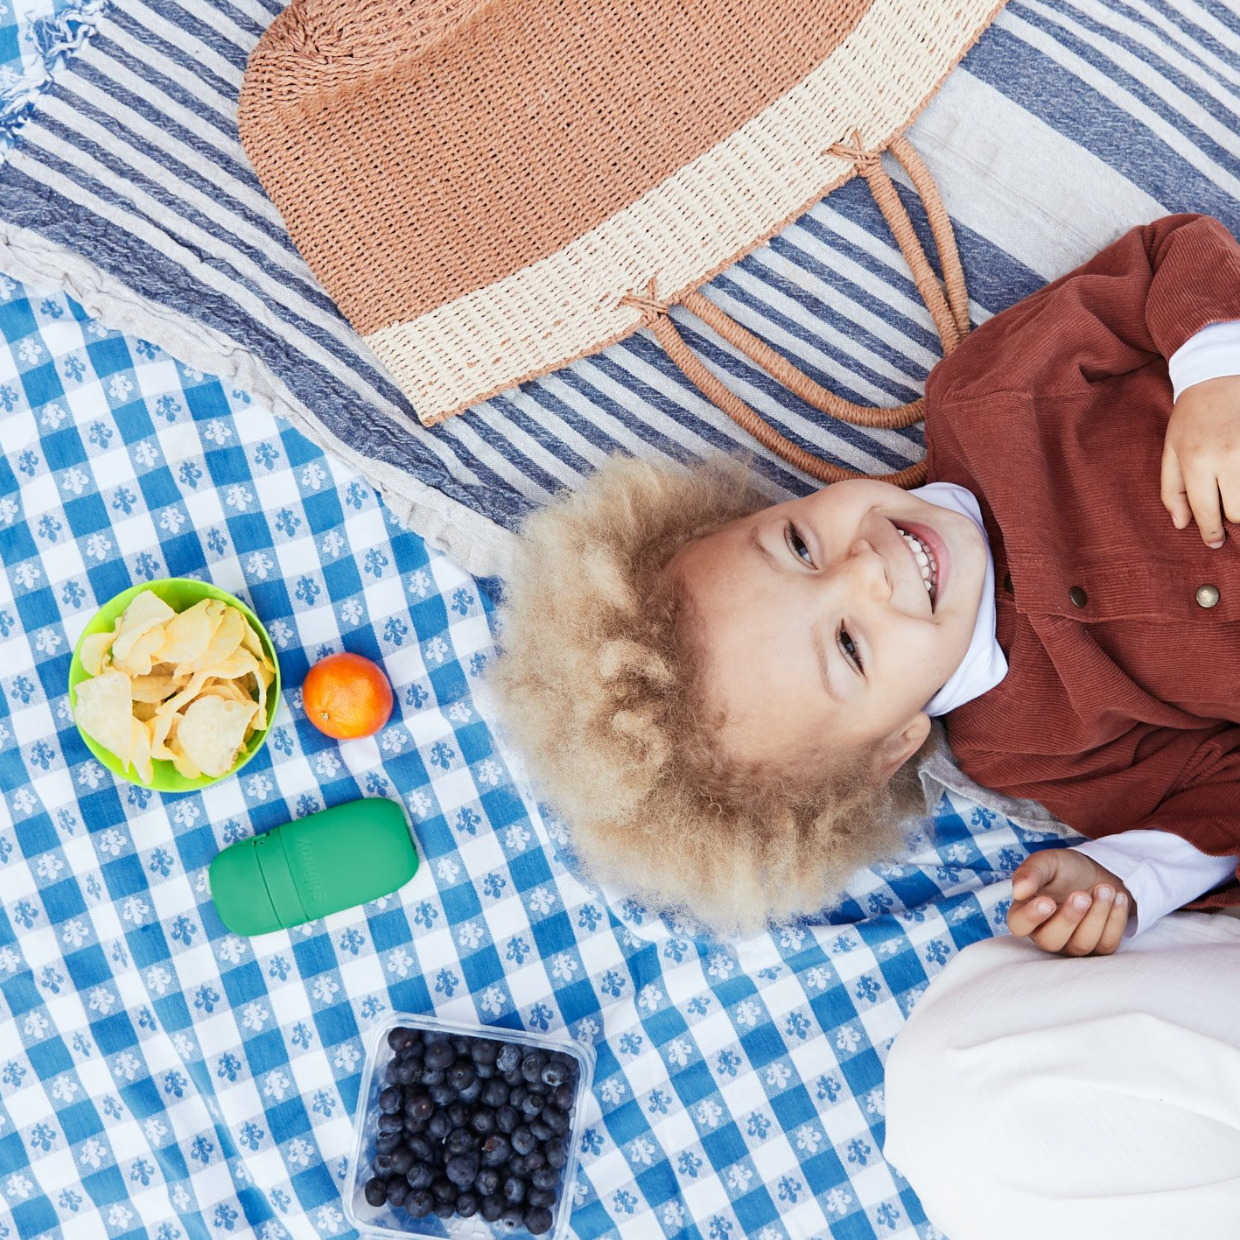 Shimmy Go is the perfect addition to any picnic